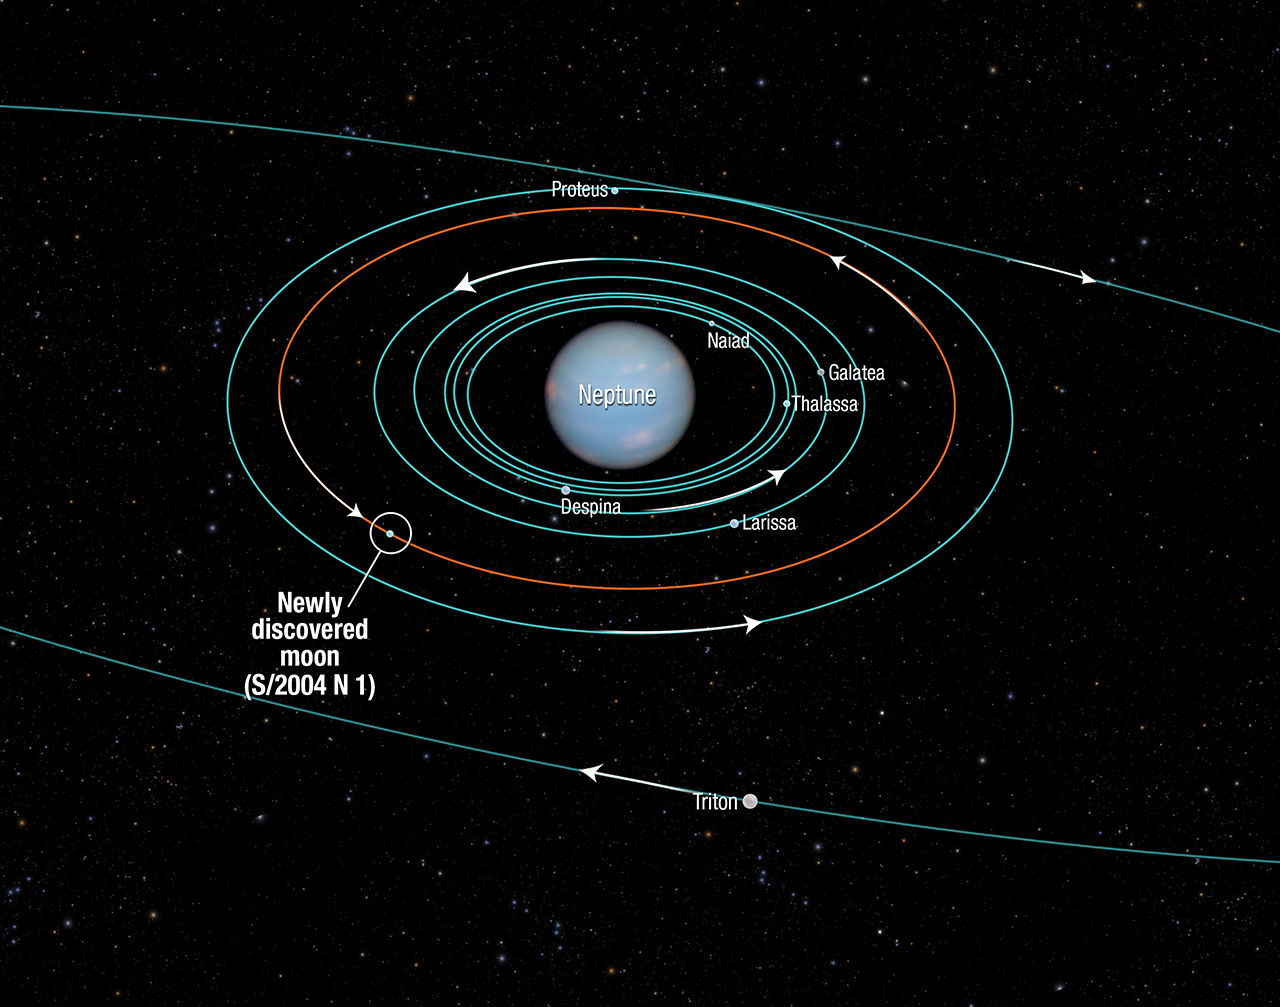 Neptune's Moons: 14 Discovered So Far